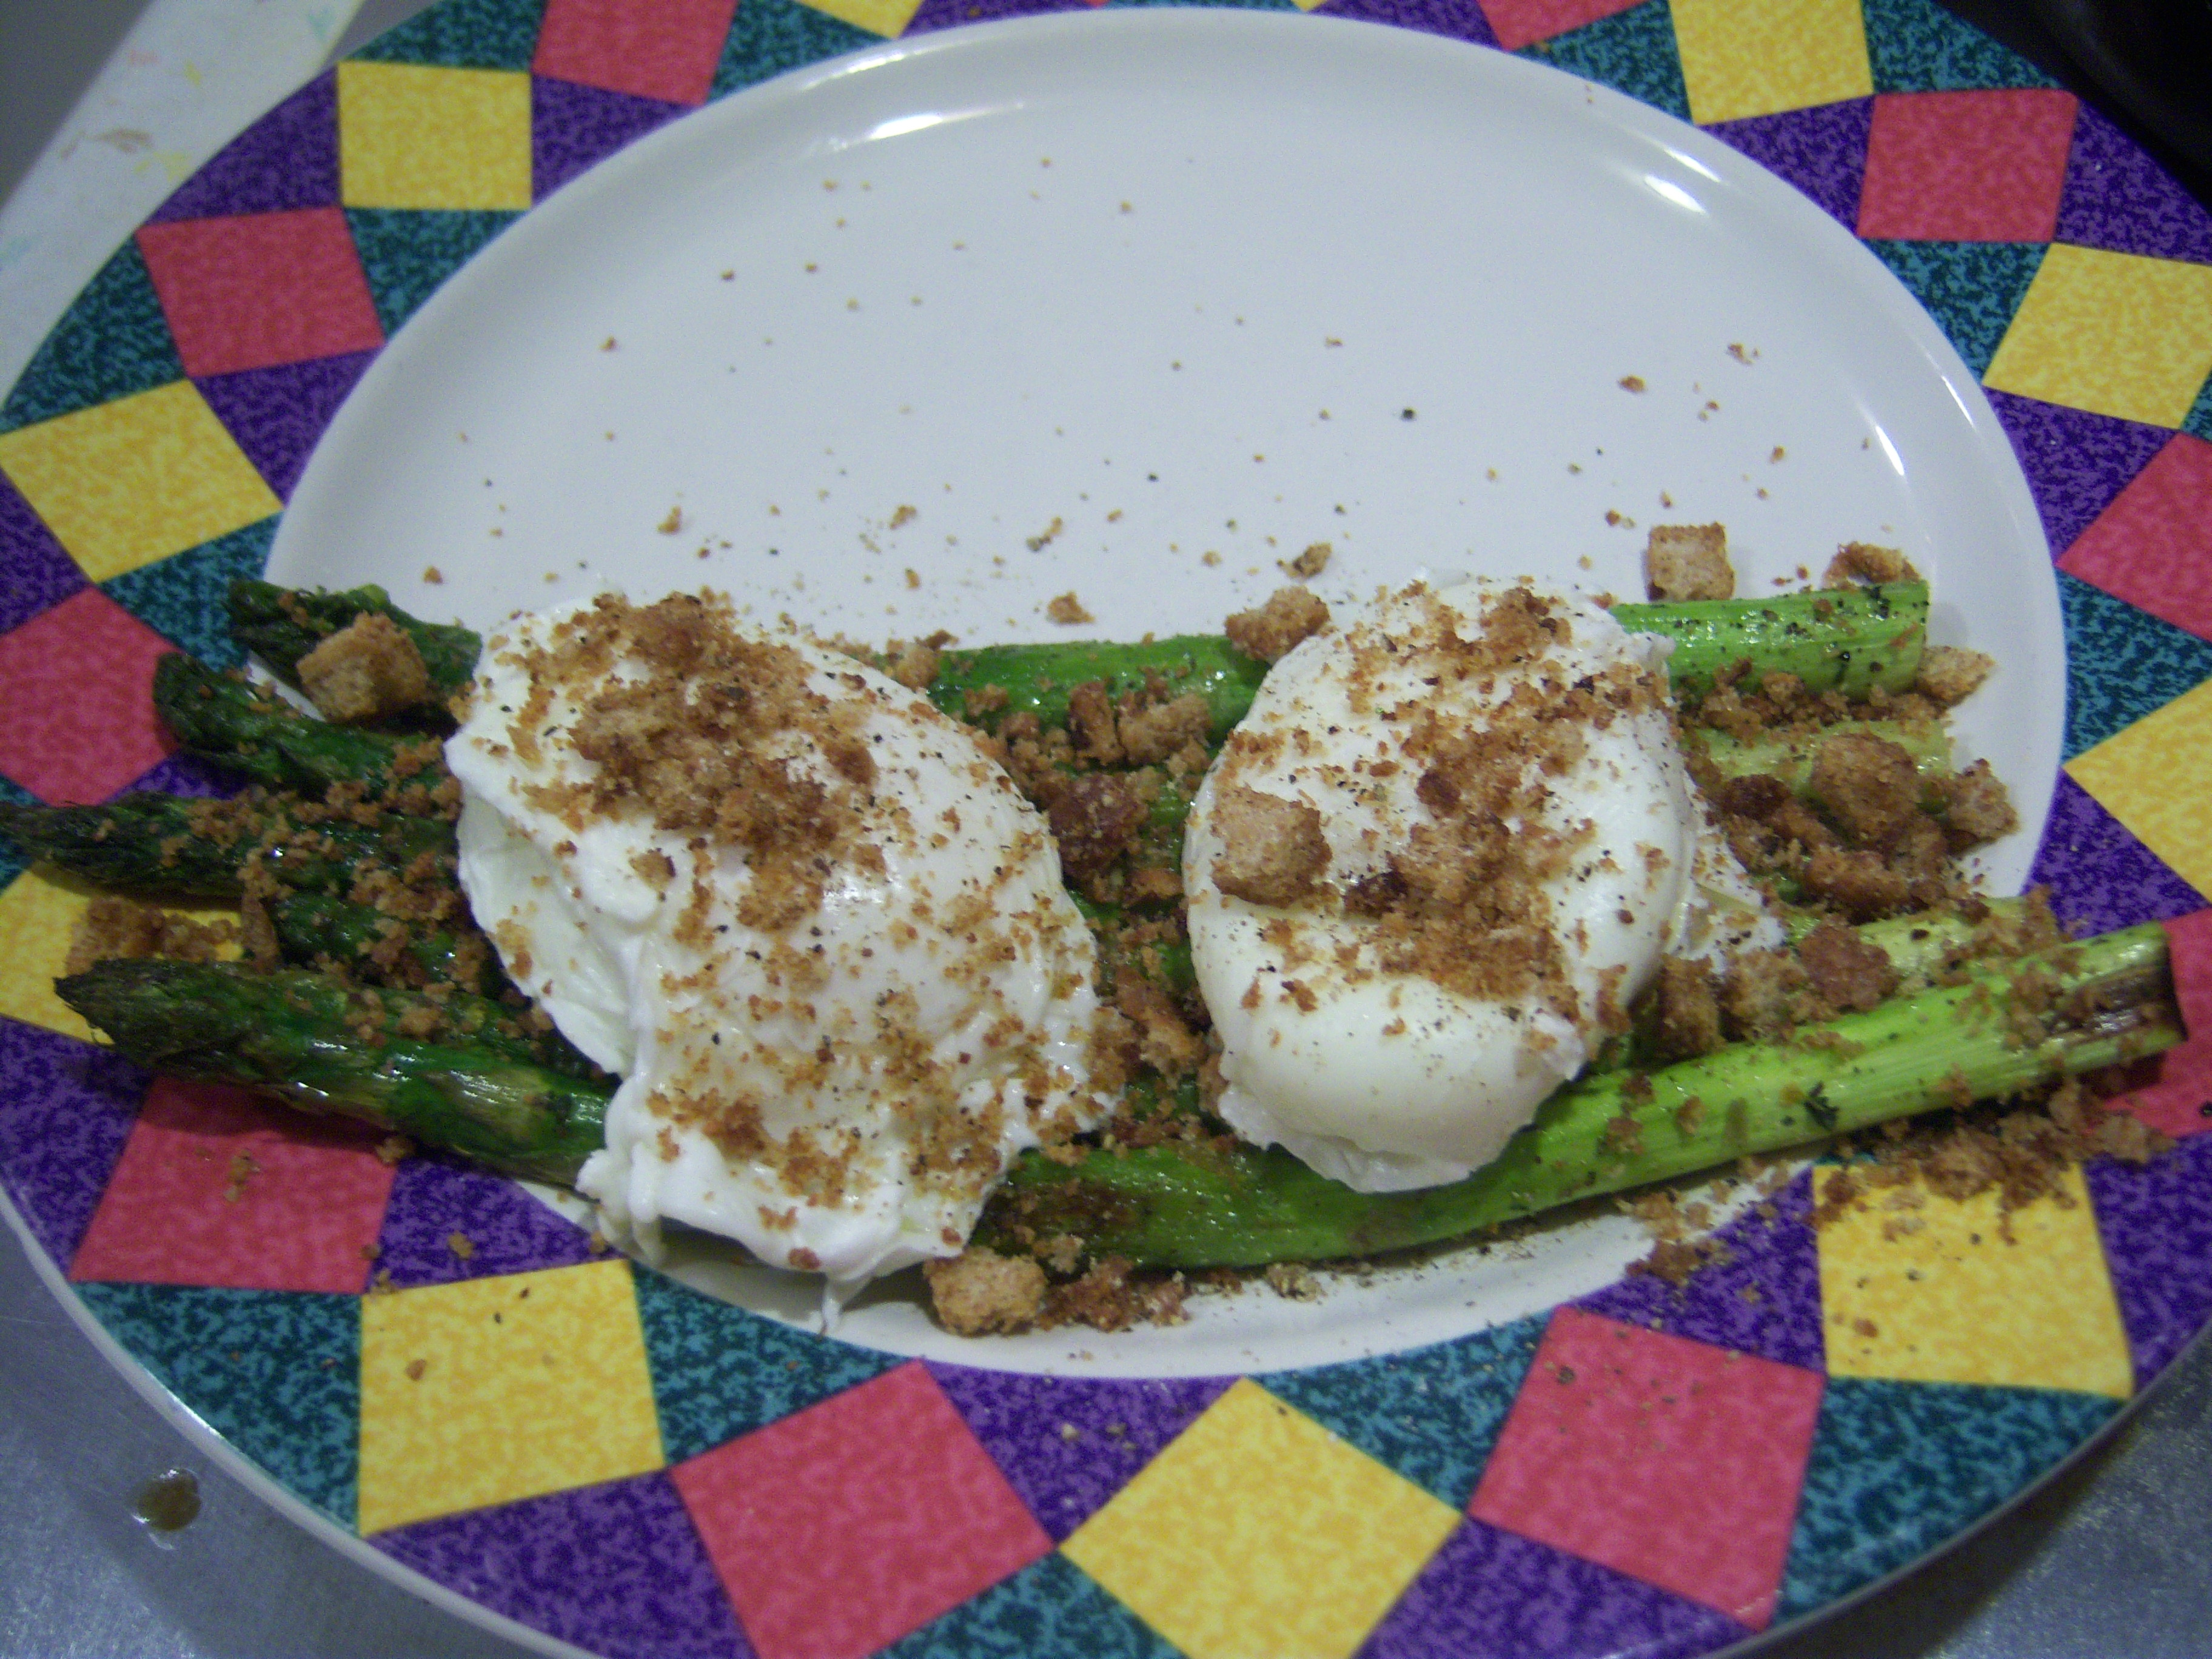 Tender Asparagus with Soft Poached Eggs, Mexican Tarragon and Italian Bread Crumbs